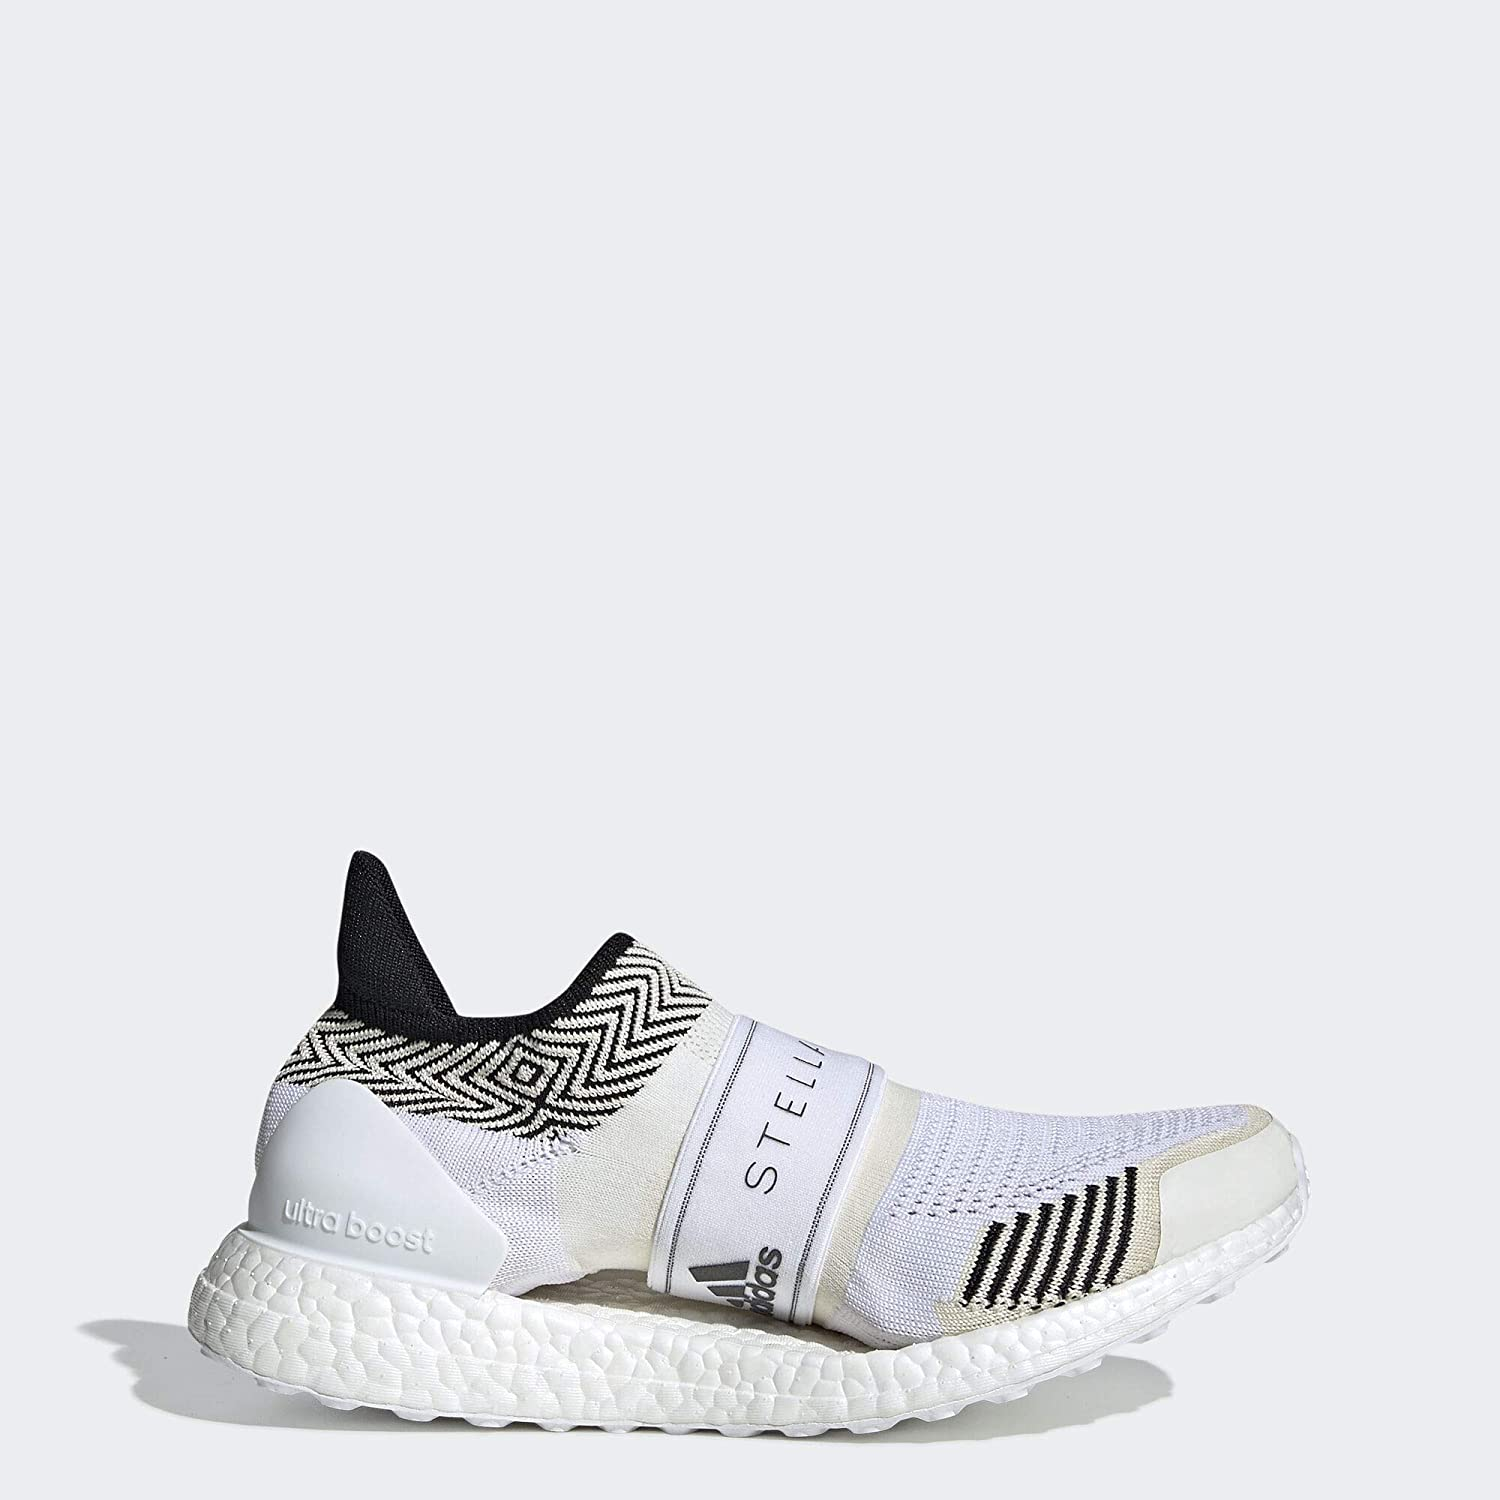 save up to 80% great look latest design Amazon.com | adidas Ultraboost X 3D Shoes Women's | Shoes